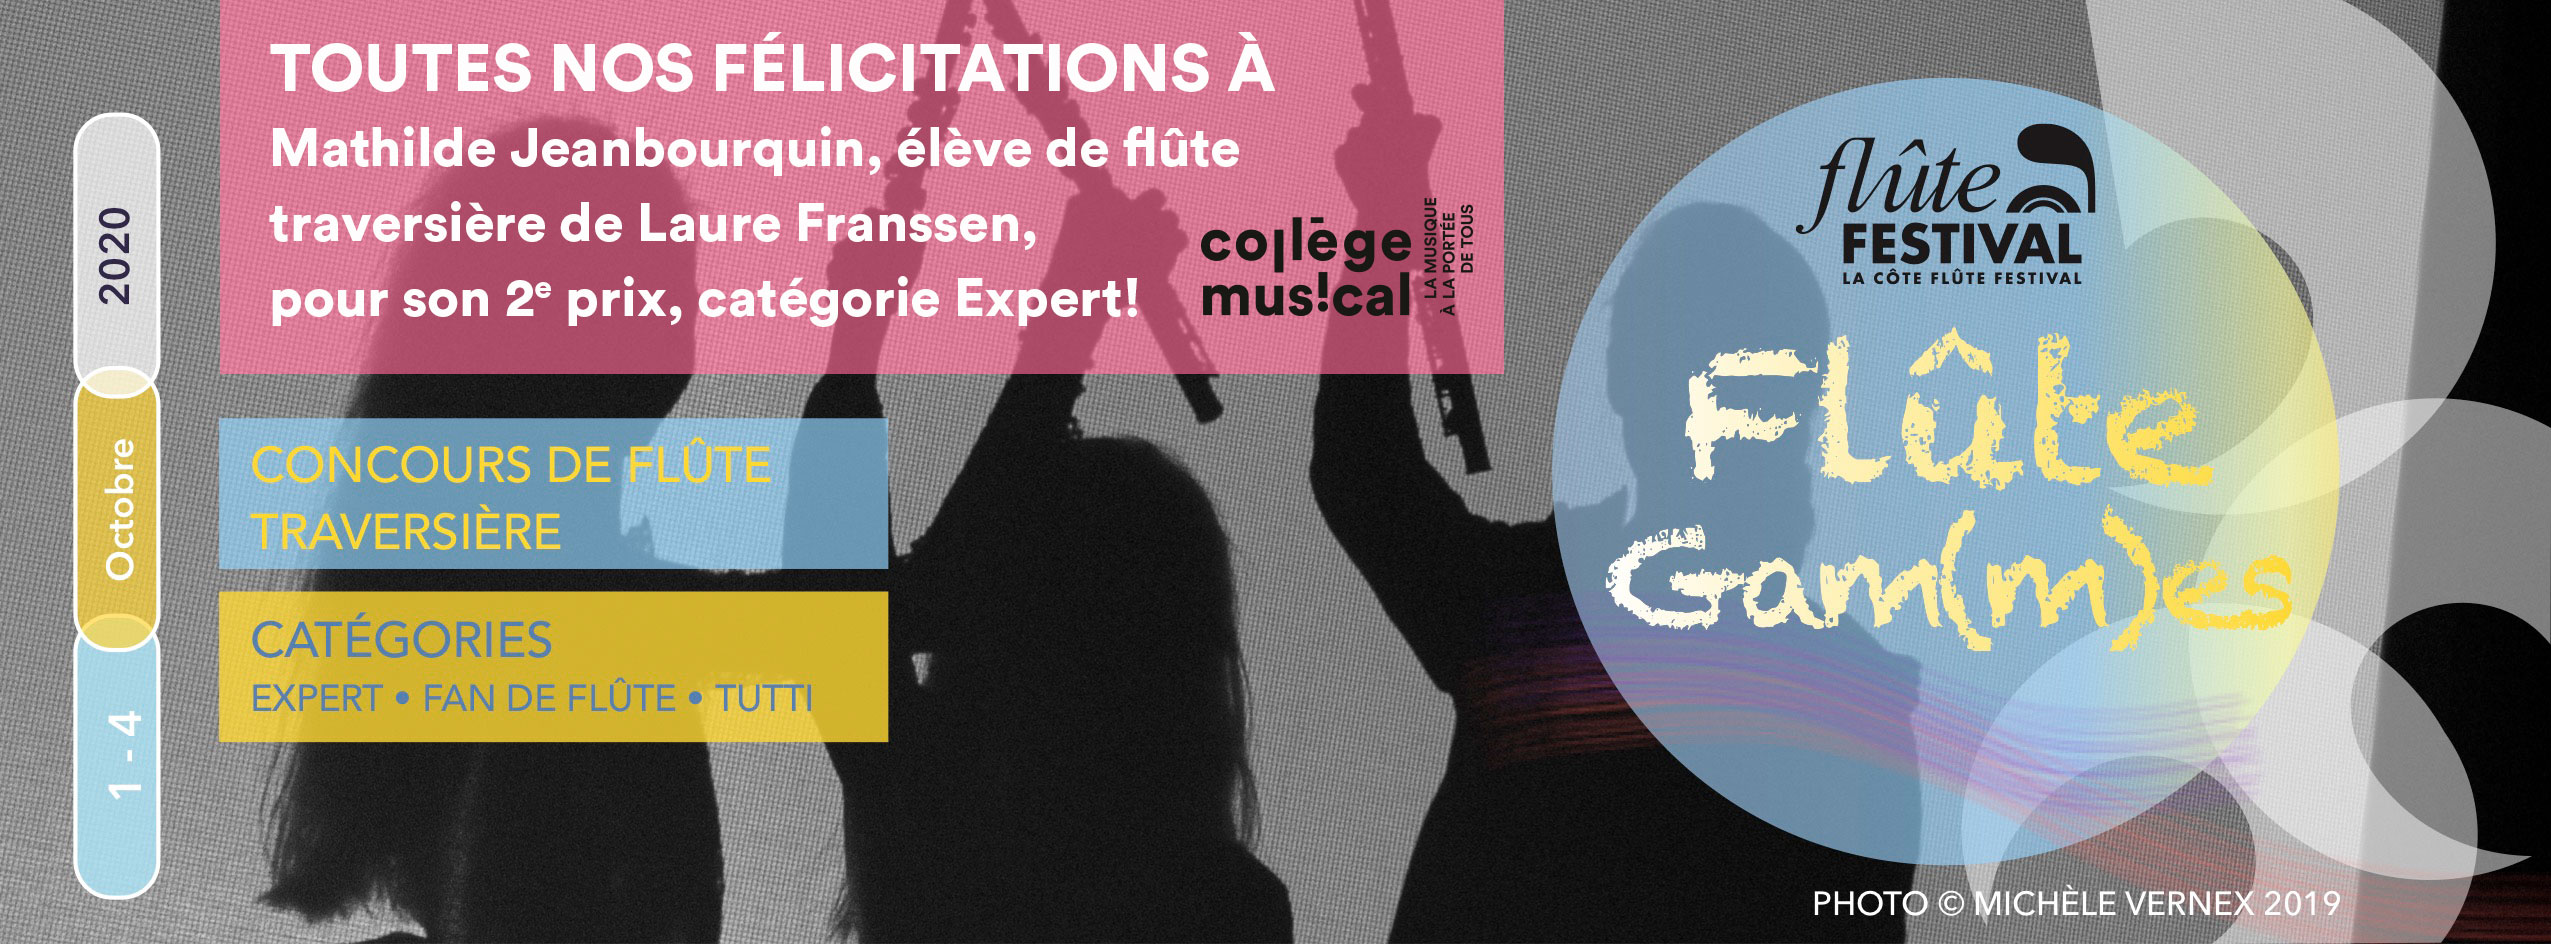 College_Musical_Flute_Concours_Mathilde